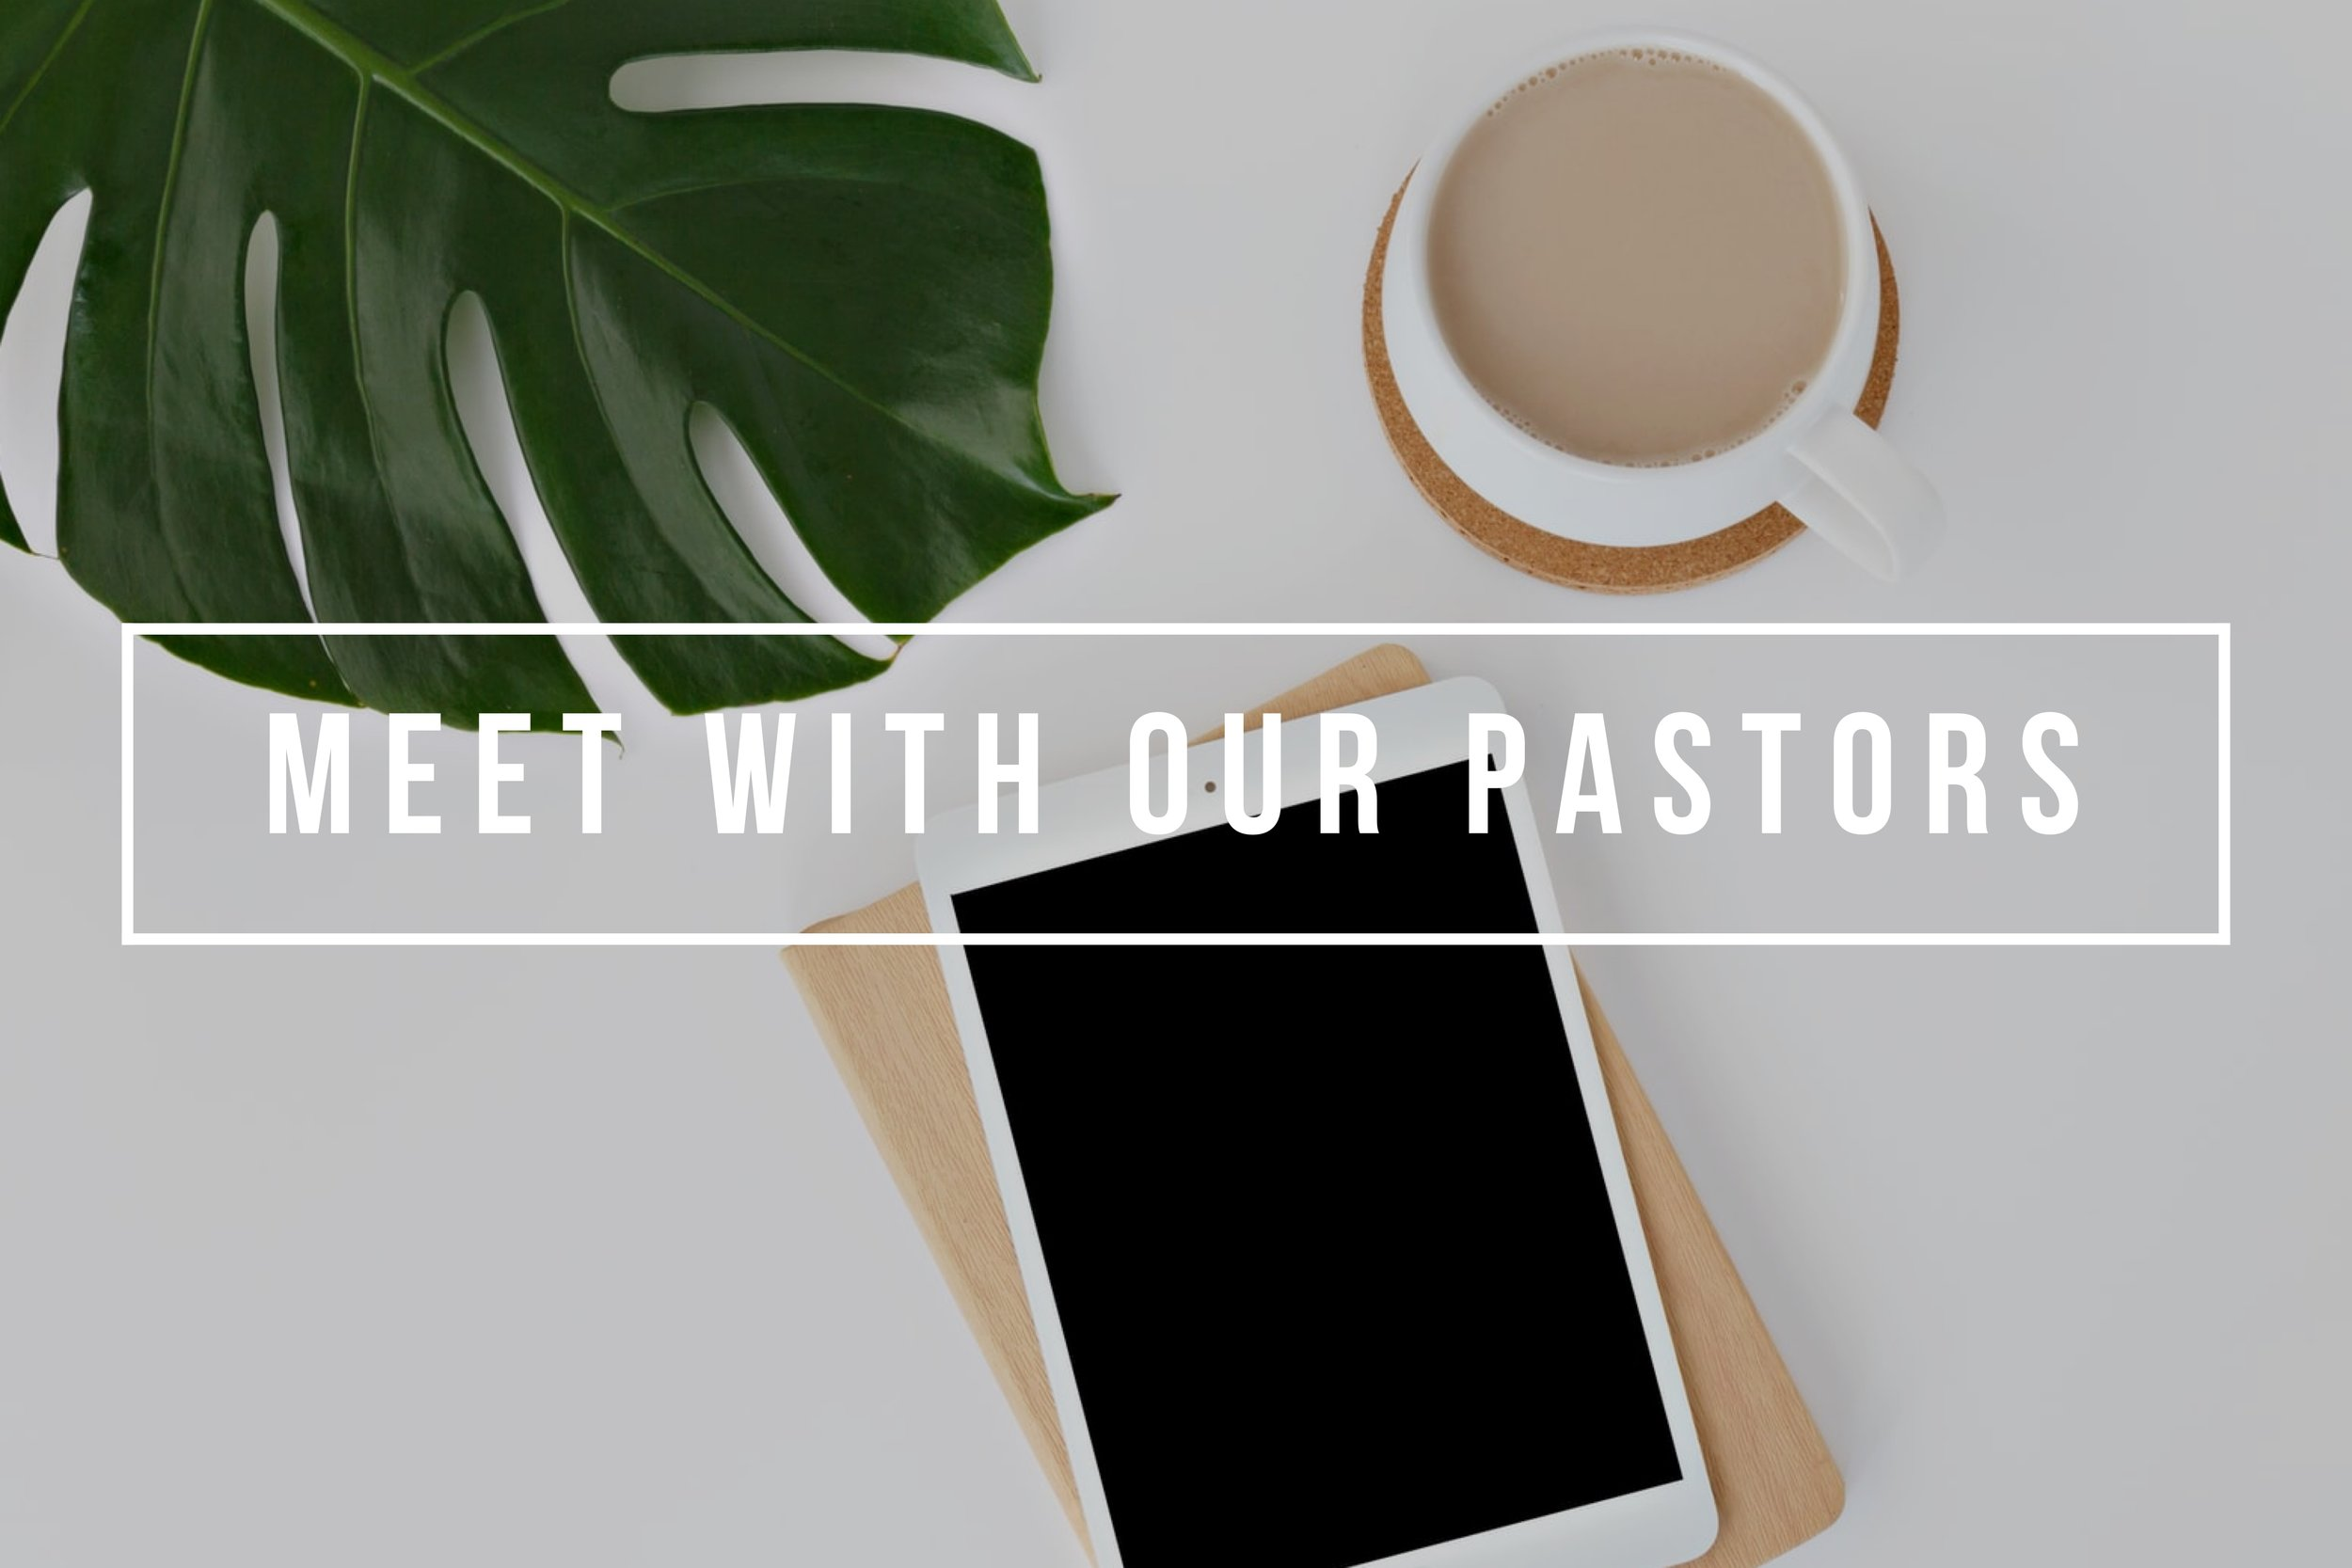 Connect with our Pastors - We now have a new way of how you can get connected with our Pastors. You can now go online and schedule a time that you would like to meet with a Pastor. Just click on Meet with Pastors to get connected!